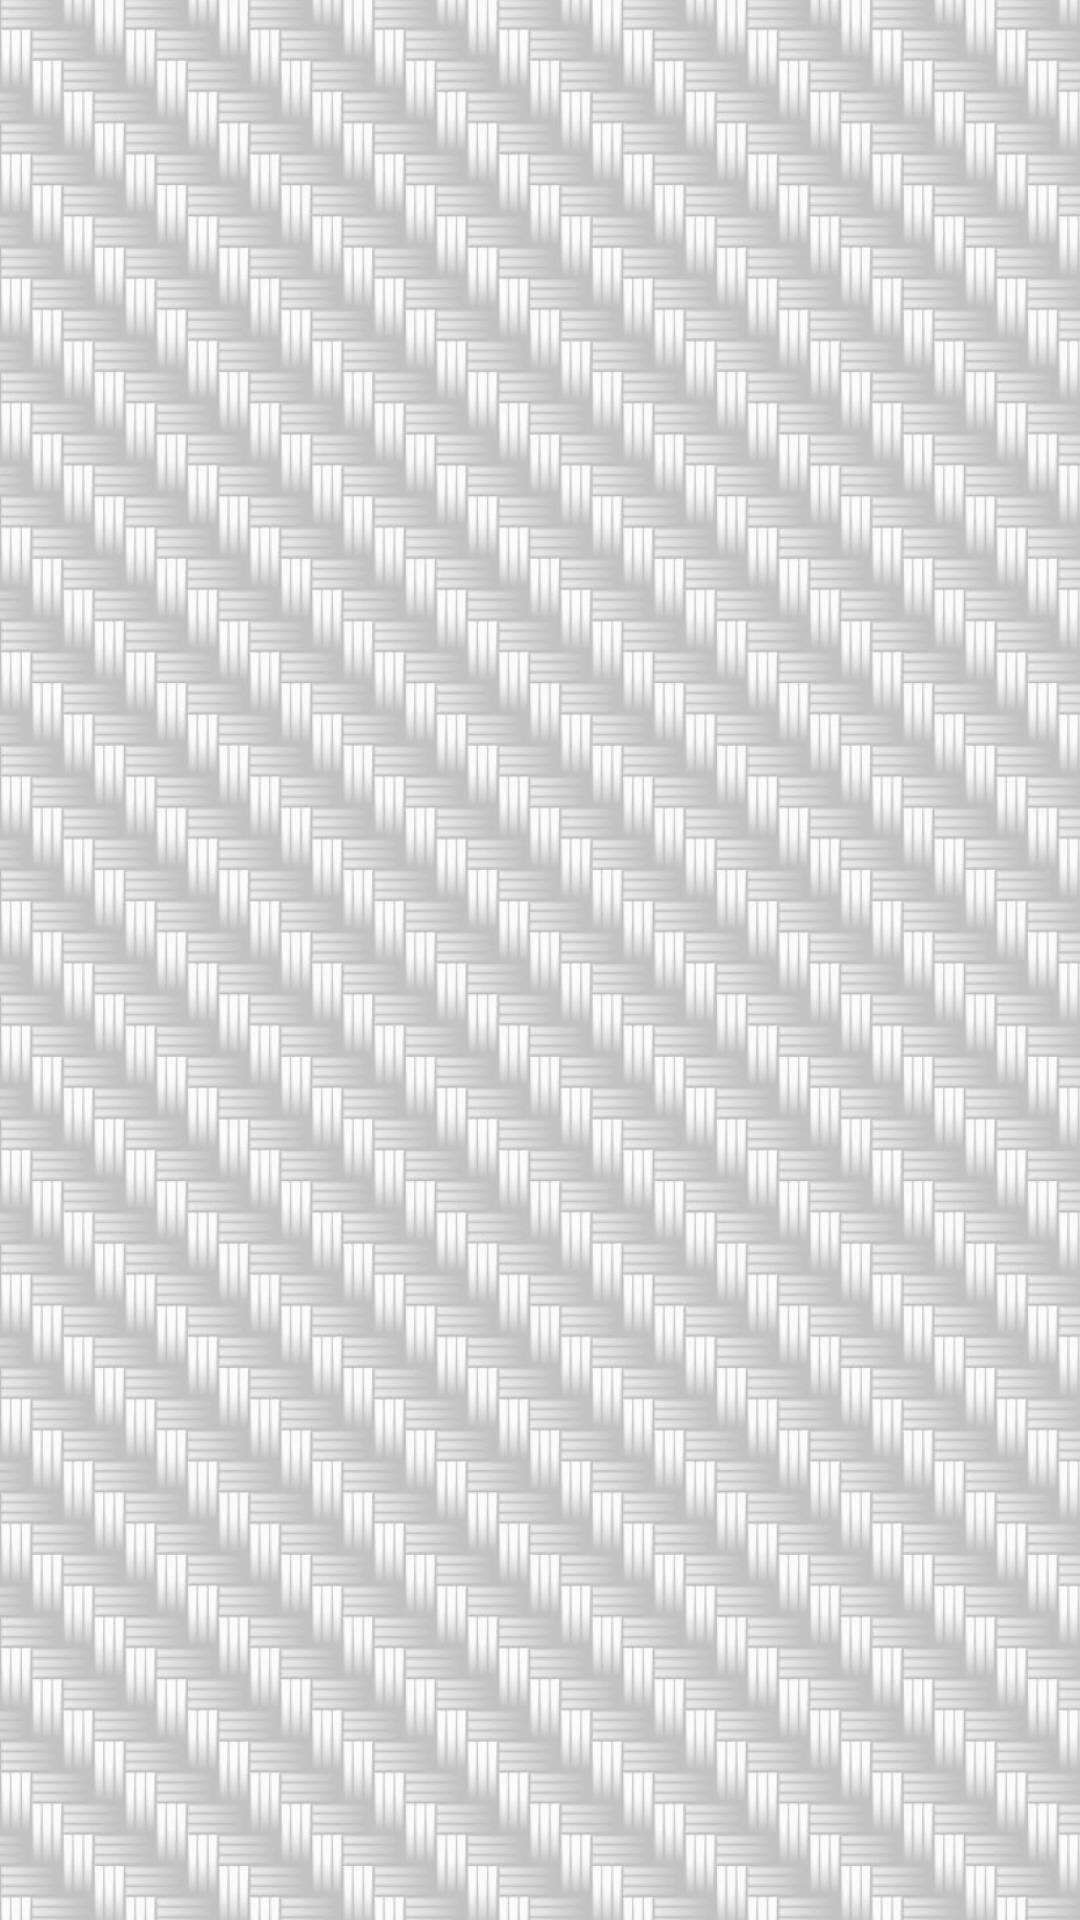 10 new white carbon fiber wallpaper full hd 1080p for pc desktop